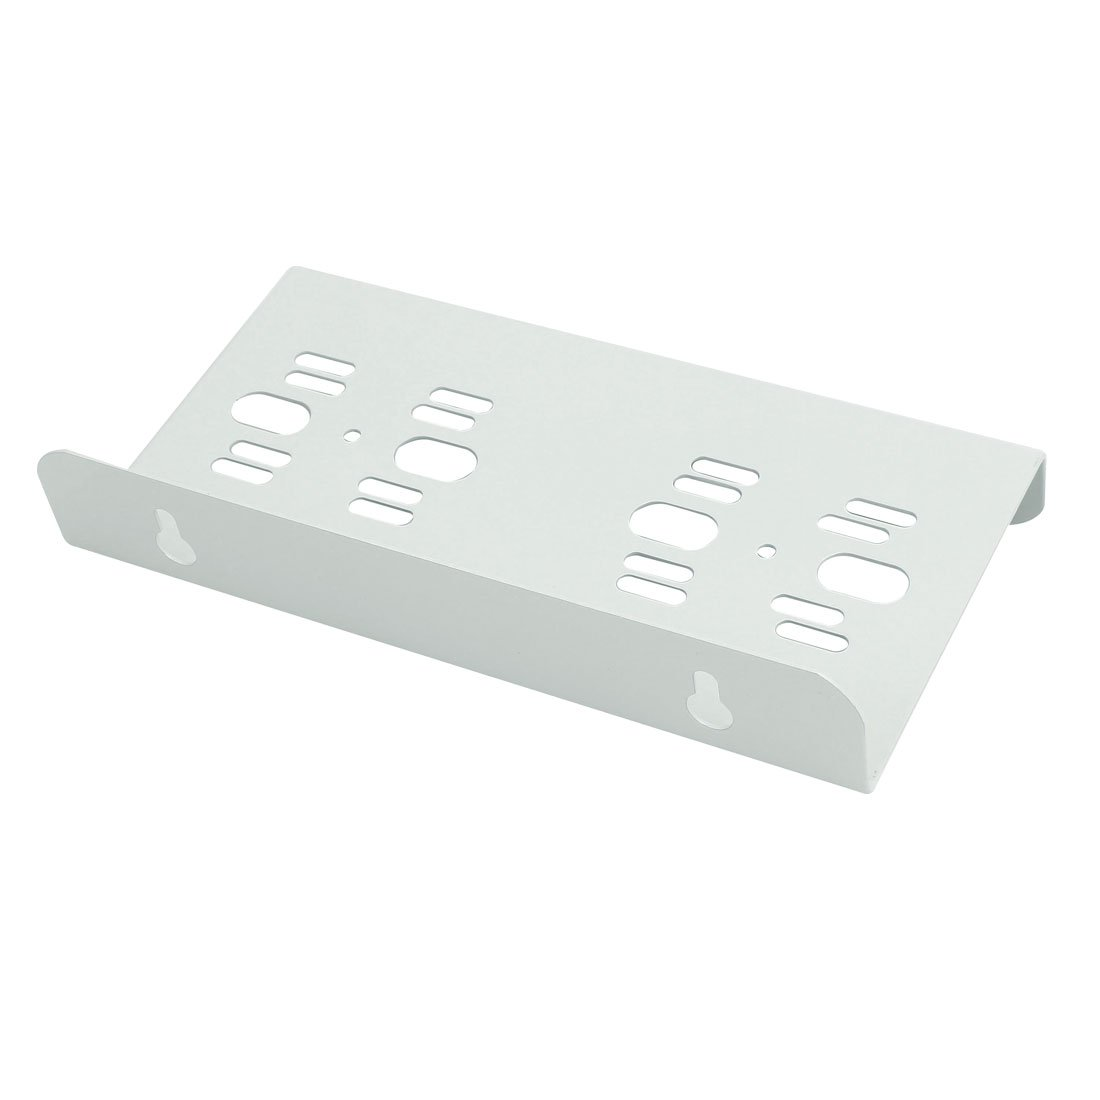 uxcell Triple Stage Hanging Mounting Bracket for 10-inch Double Water Filter Housing by uxcell (Image #3)